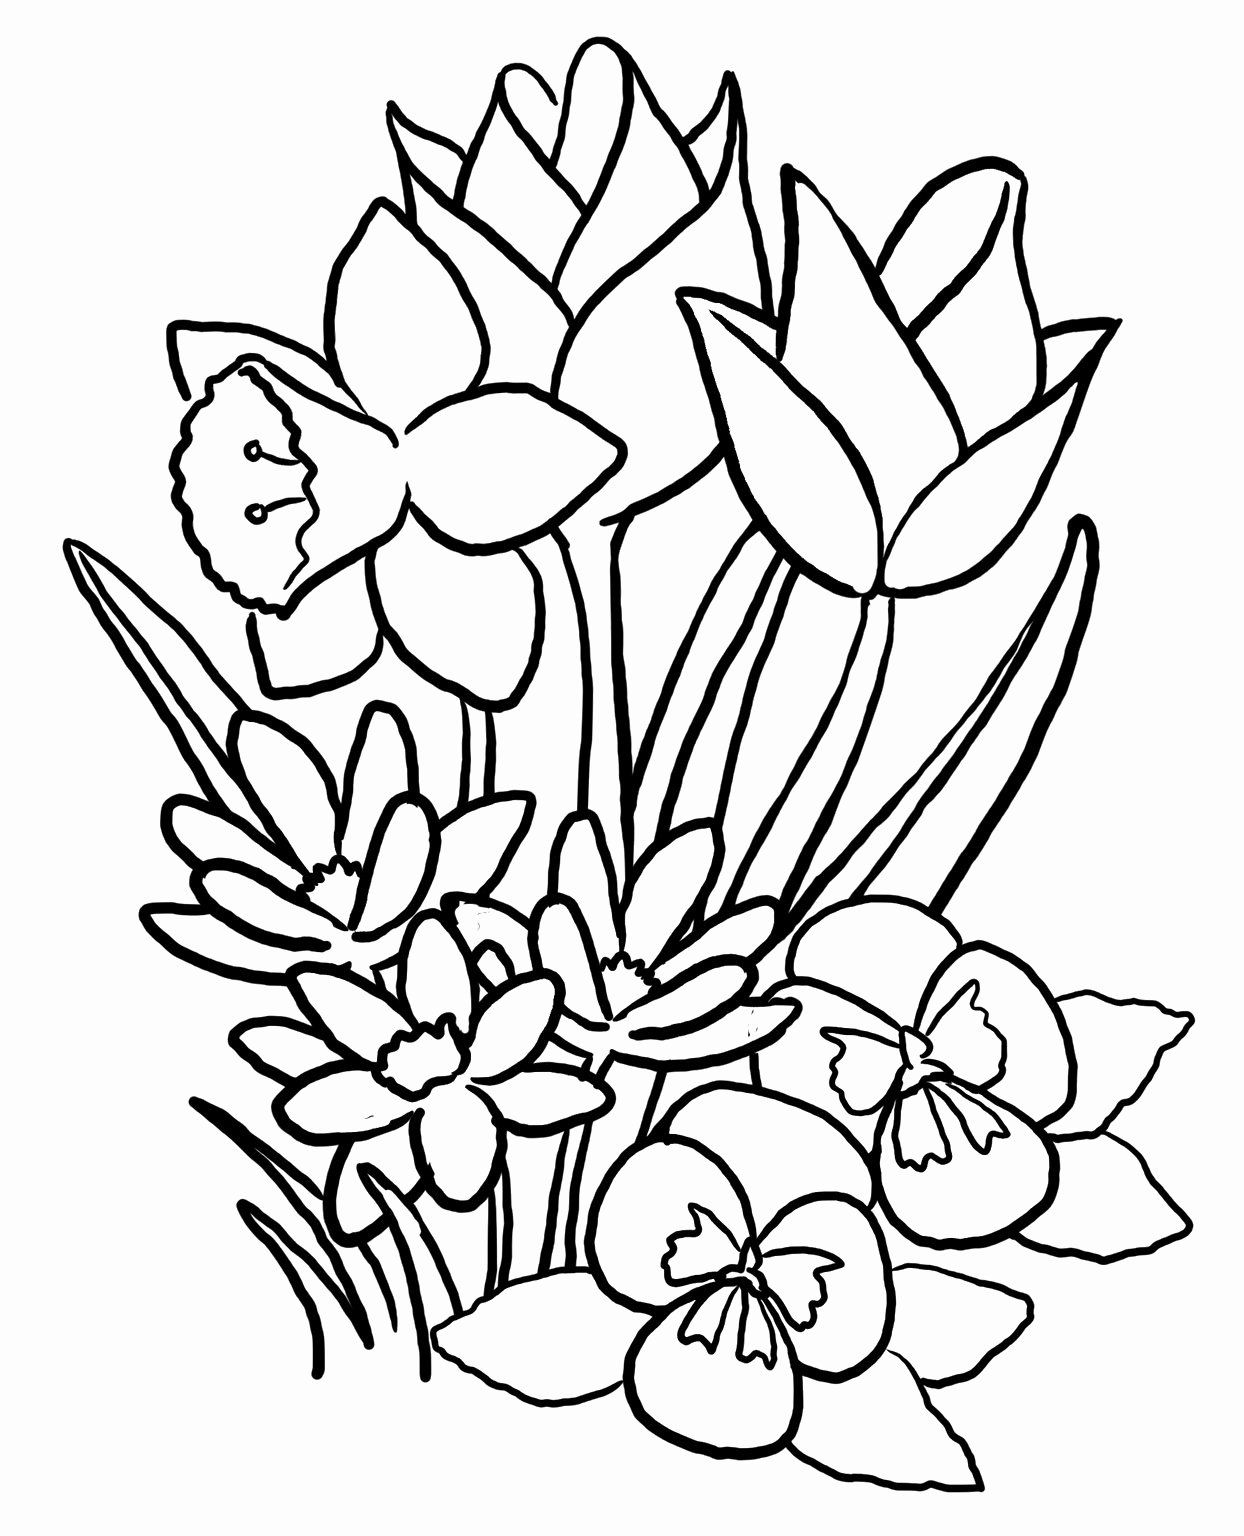 Spring Flowers Coloring Pages Printable Lovely Spring Coloring